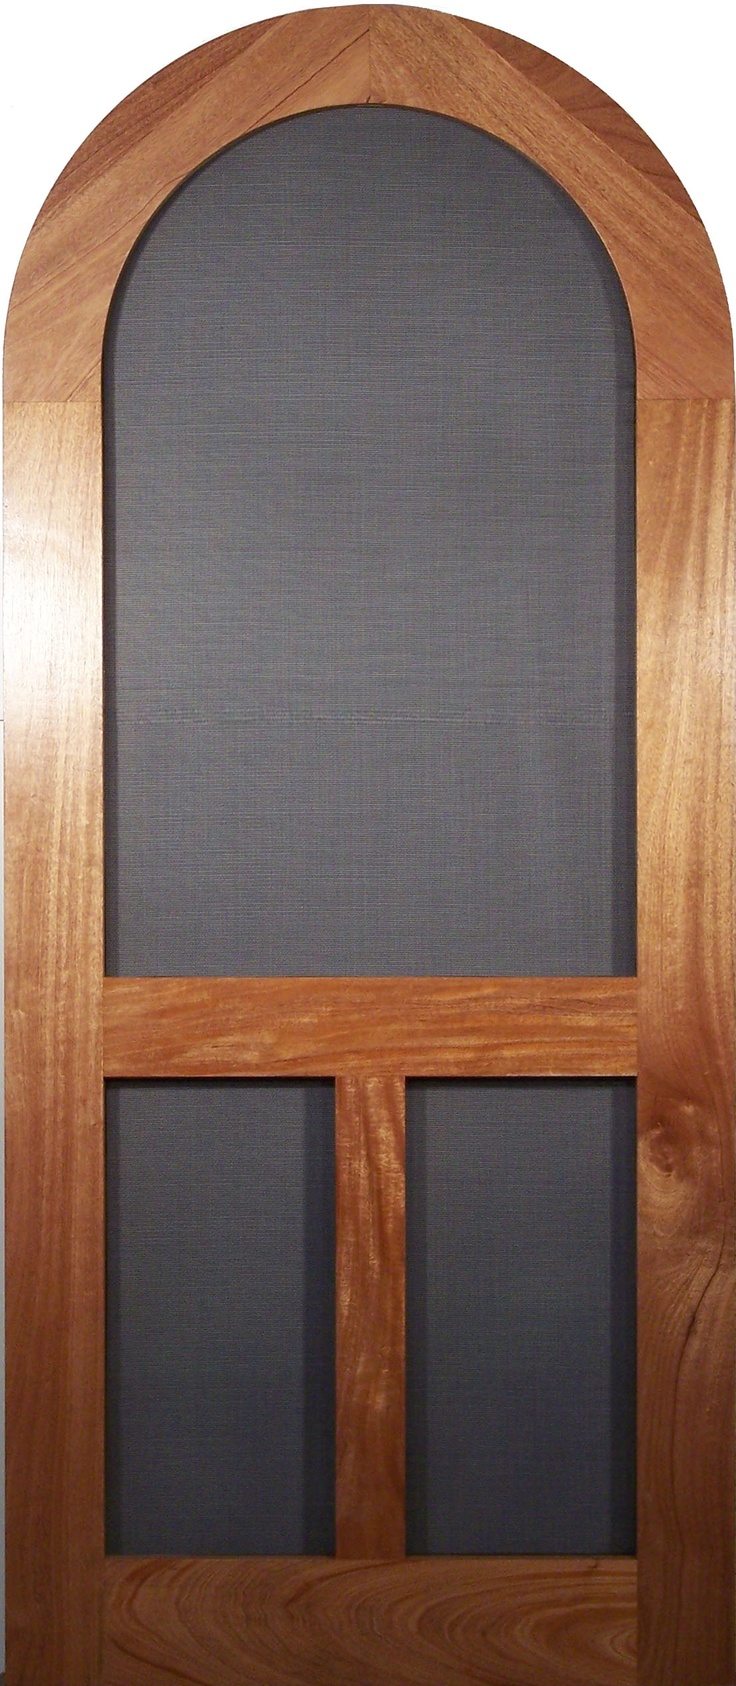 1000 images about screen storm doors on pinterest for Storm door with screen on top